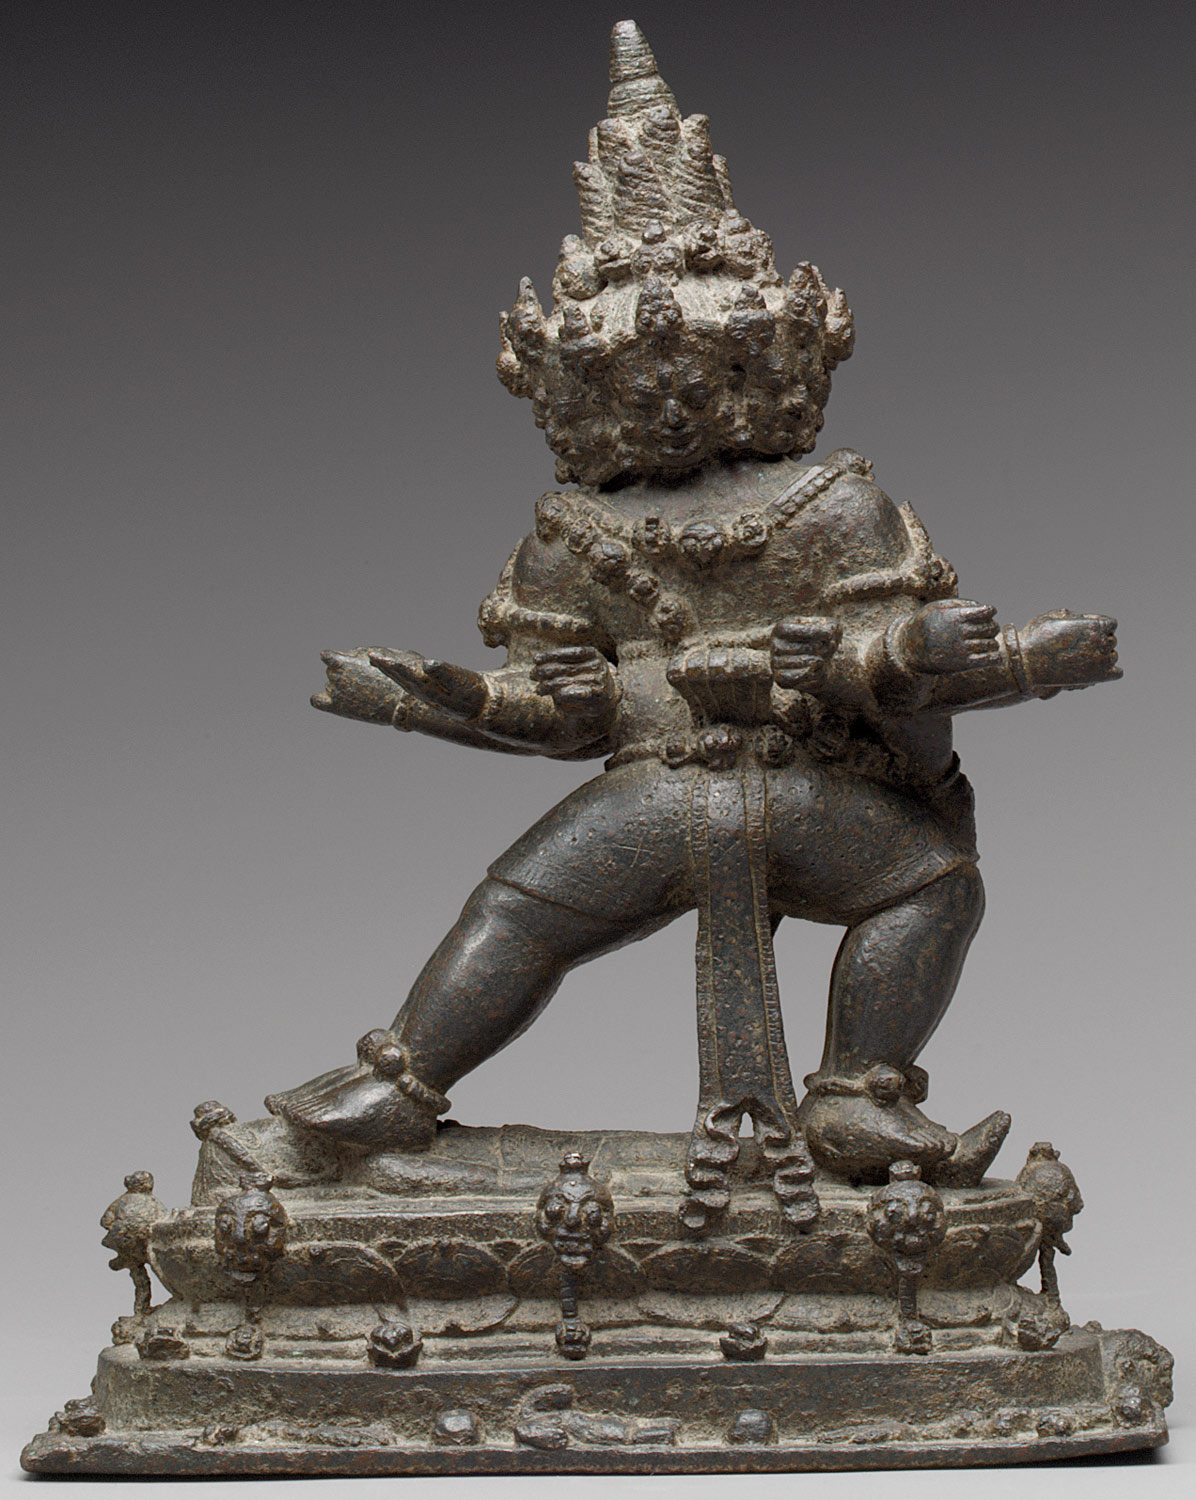 The Buddhist Guardian Mahabala